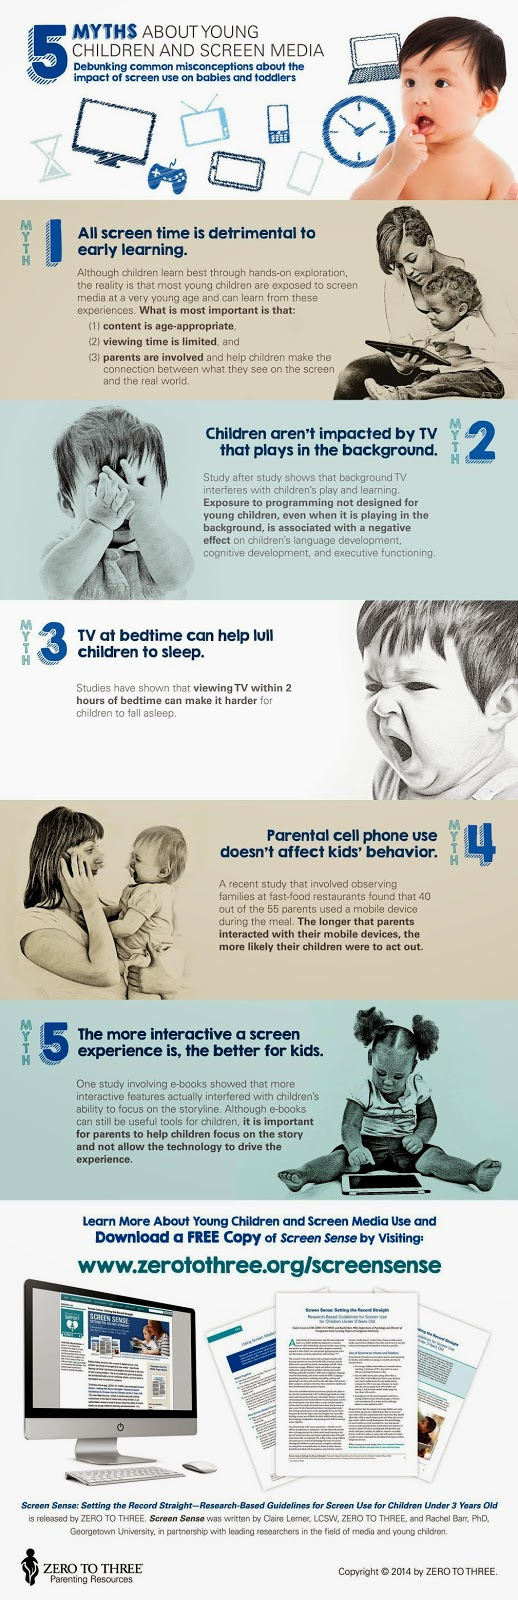 Guidelines for Screen Use for Children Under 3 Years Old.